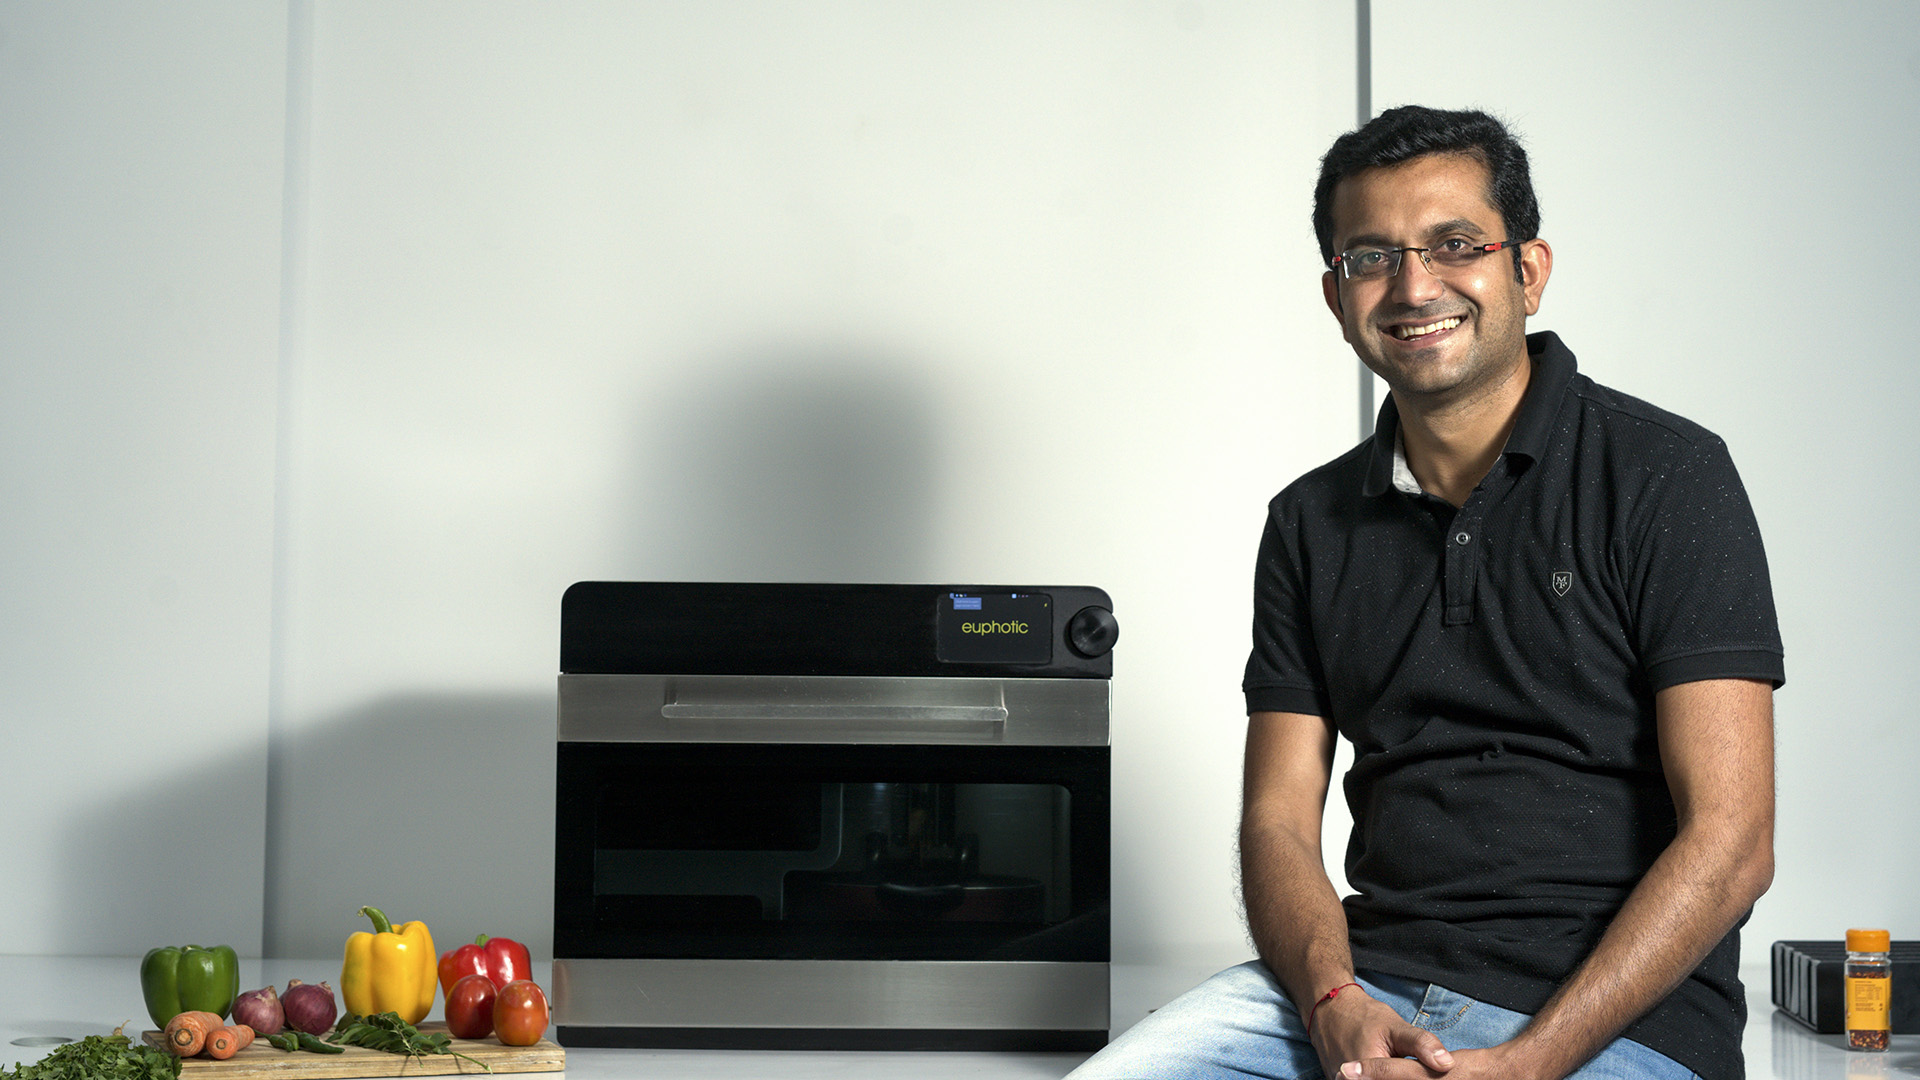 VIDEO: Robochop: The Robot Chef That's Taking Over The Kitchen